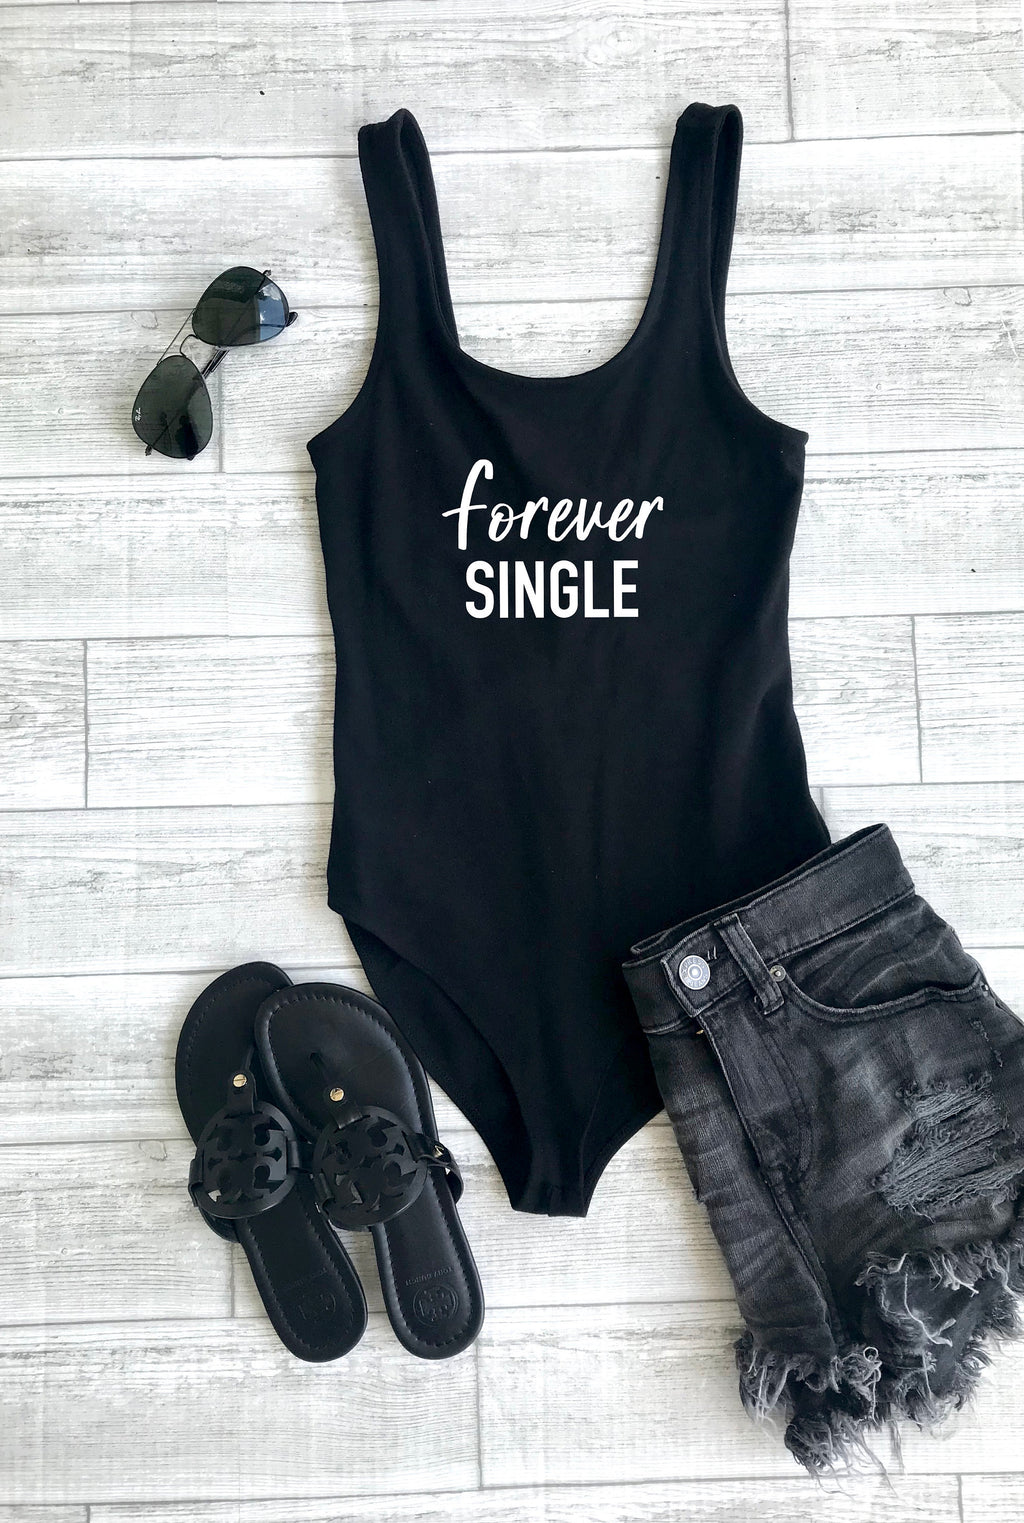 Women's bodysuit, Cute women's bodysuit, Forever single , Cute women's outfit, cute summer outfit, going out outfit, club outfit, cute tops